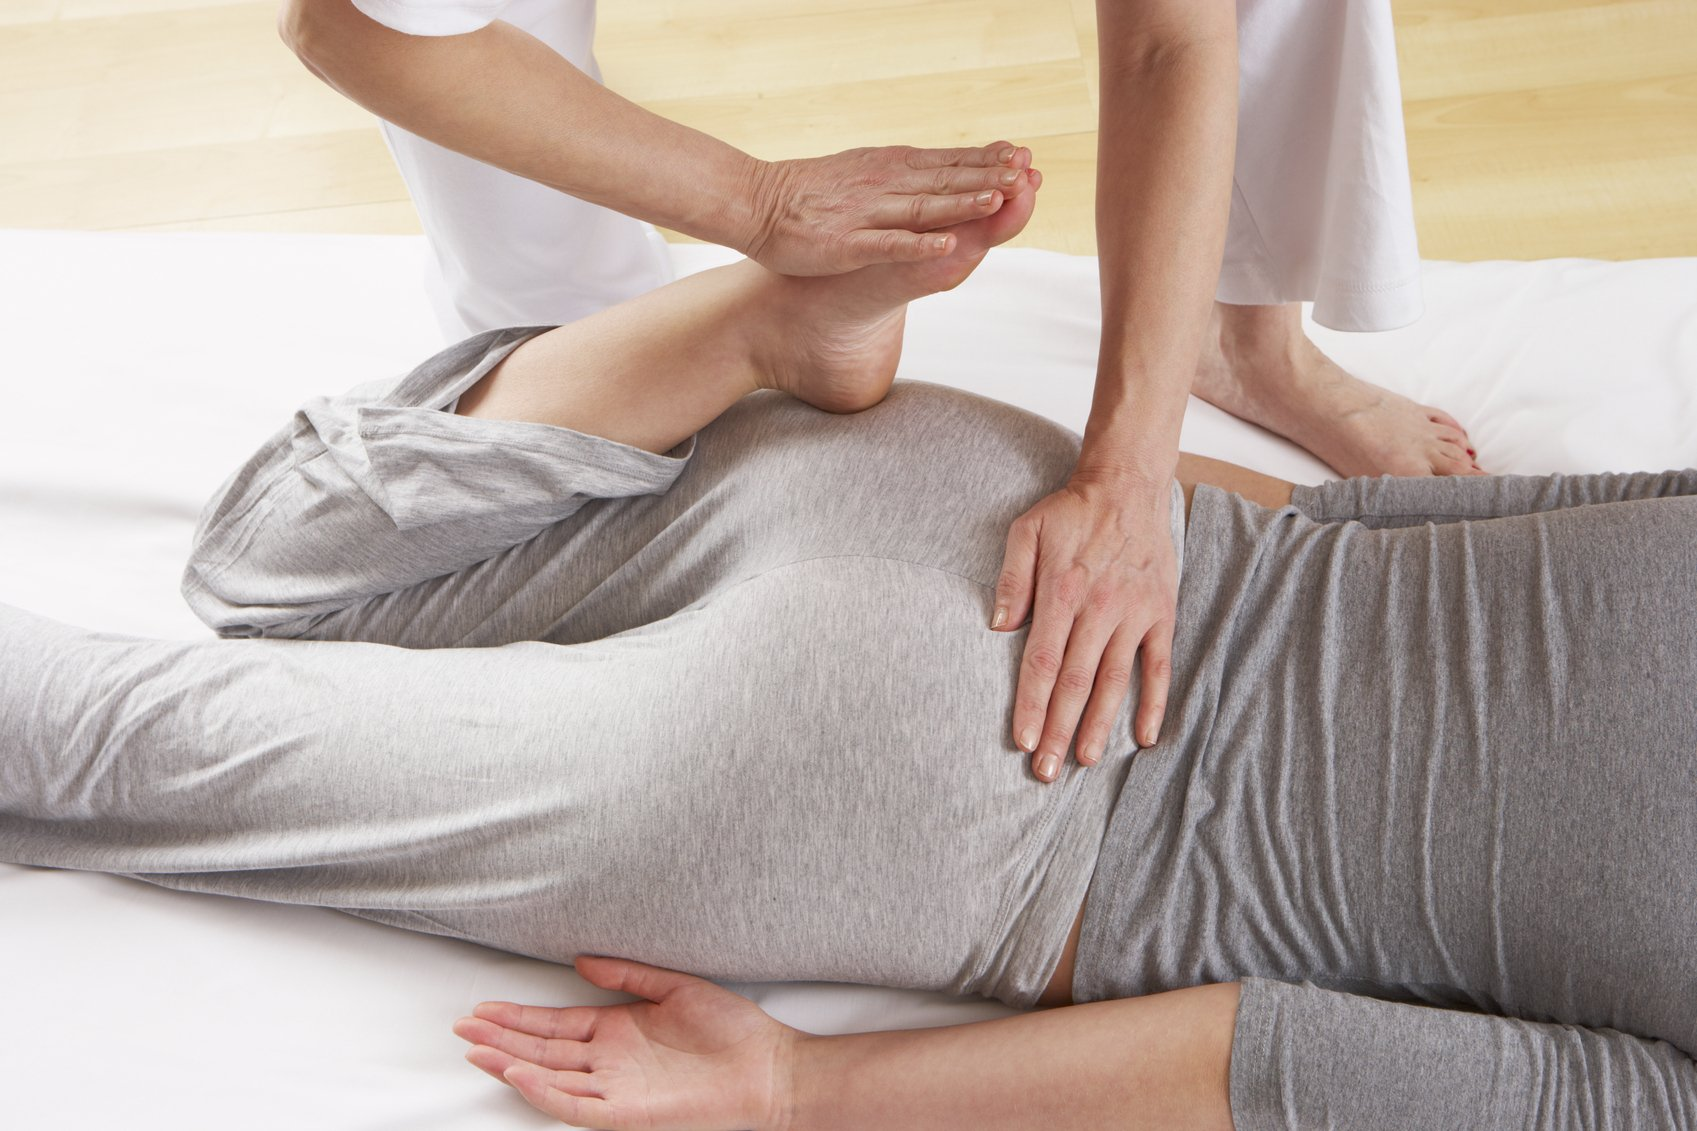 Woman having Shiatsu massage indoors